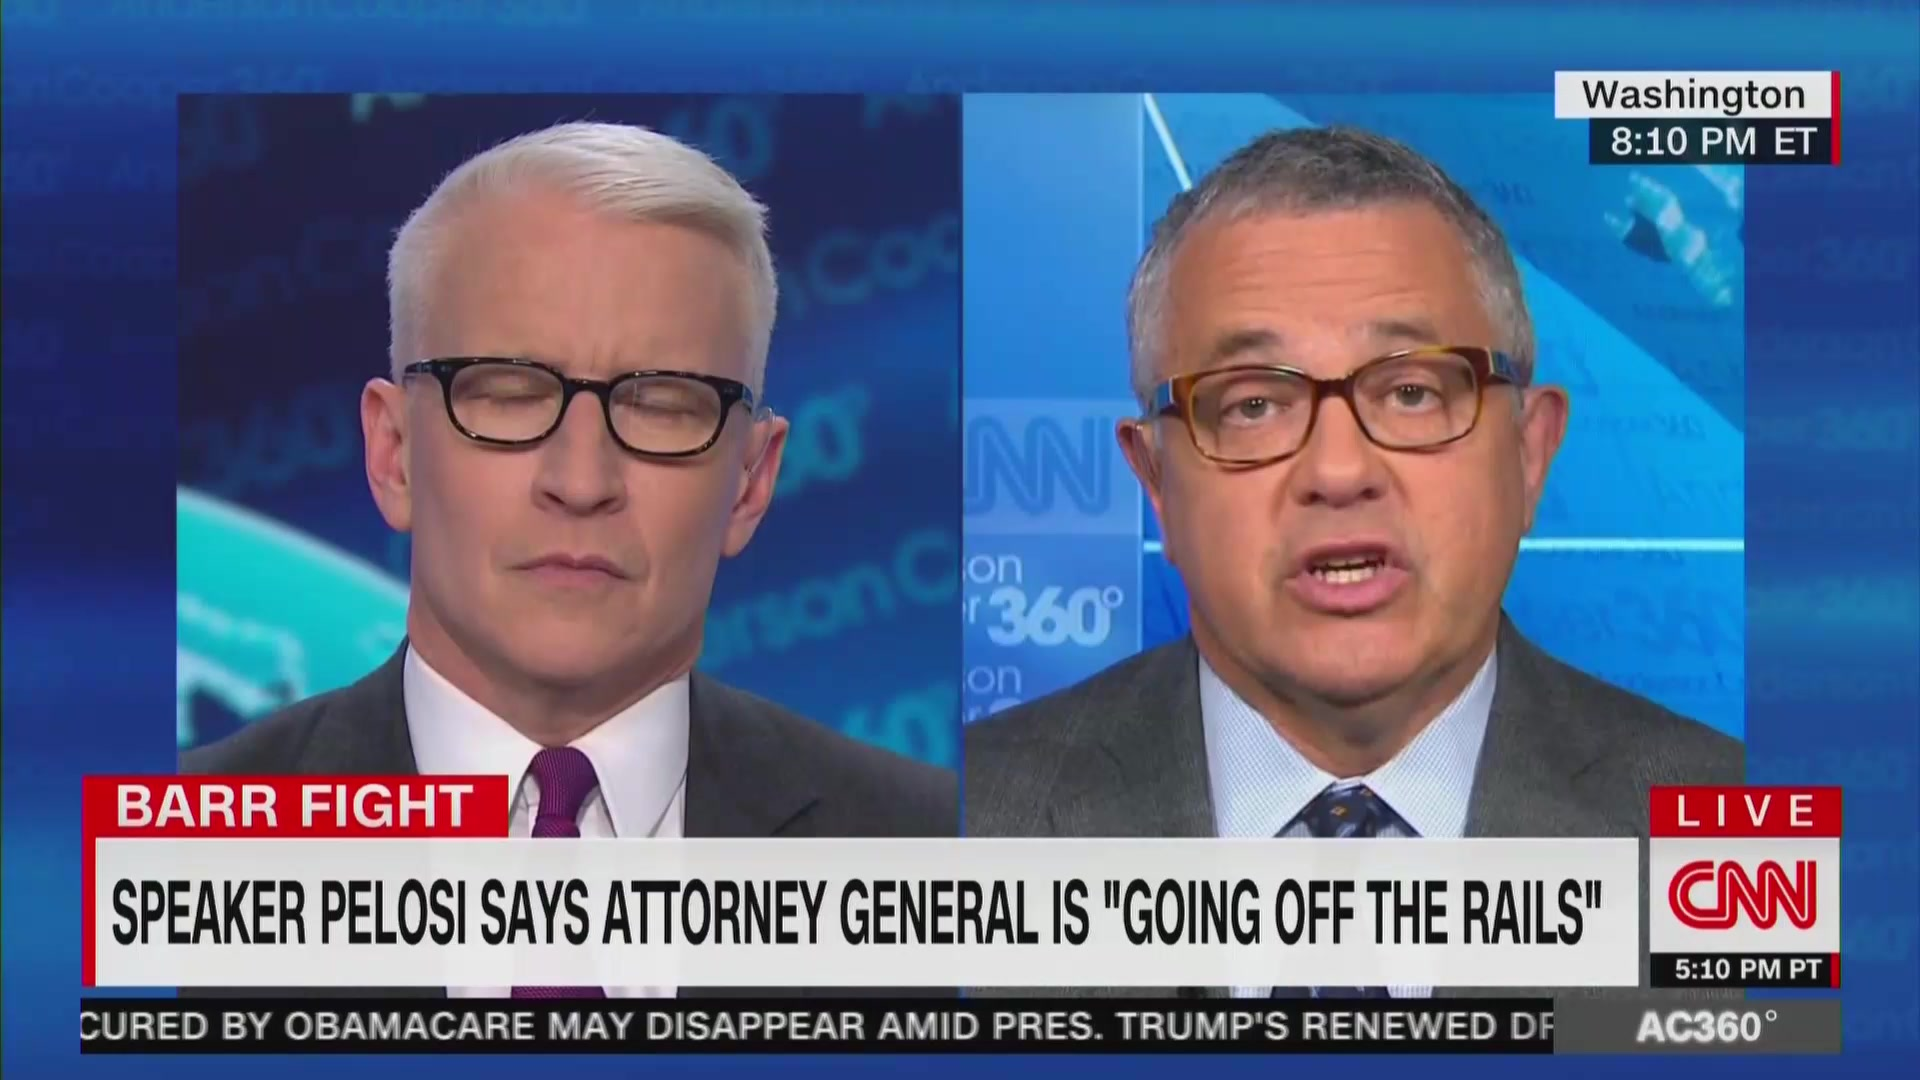 CNN's Jeffrey Toobin: William Barr 'Talks Like Sean Hannity'